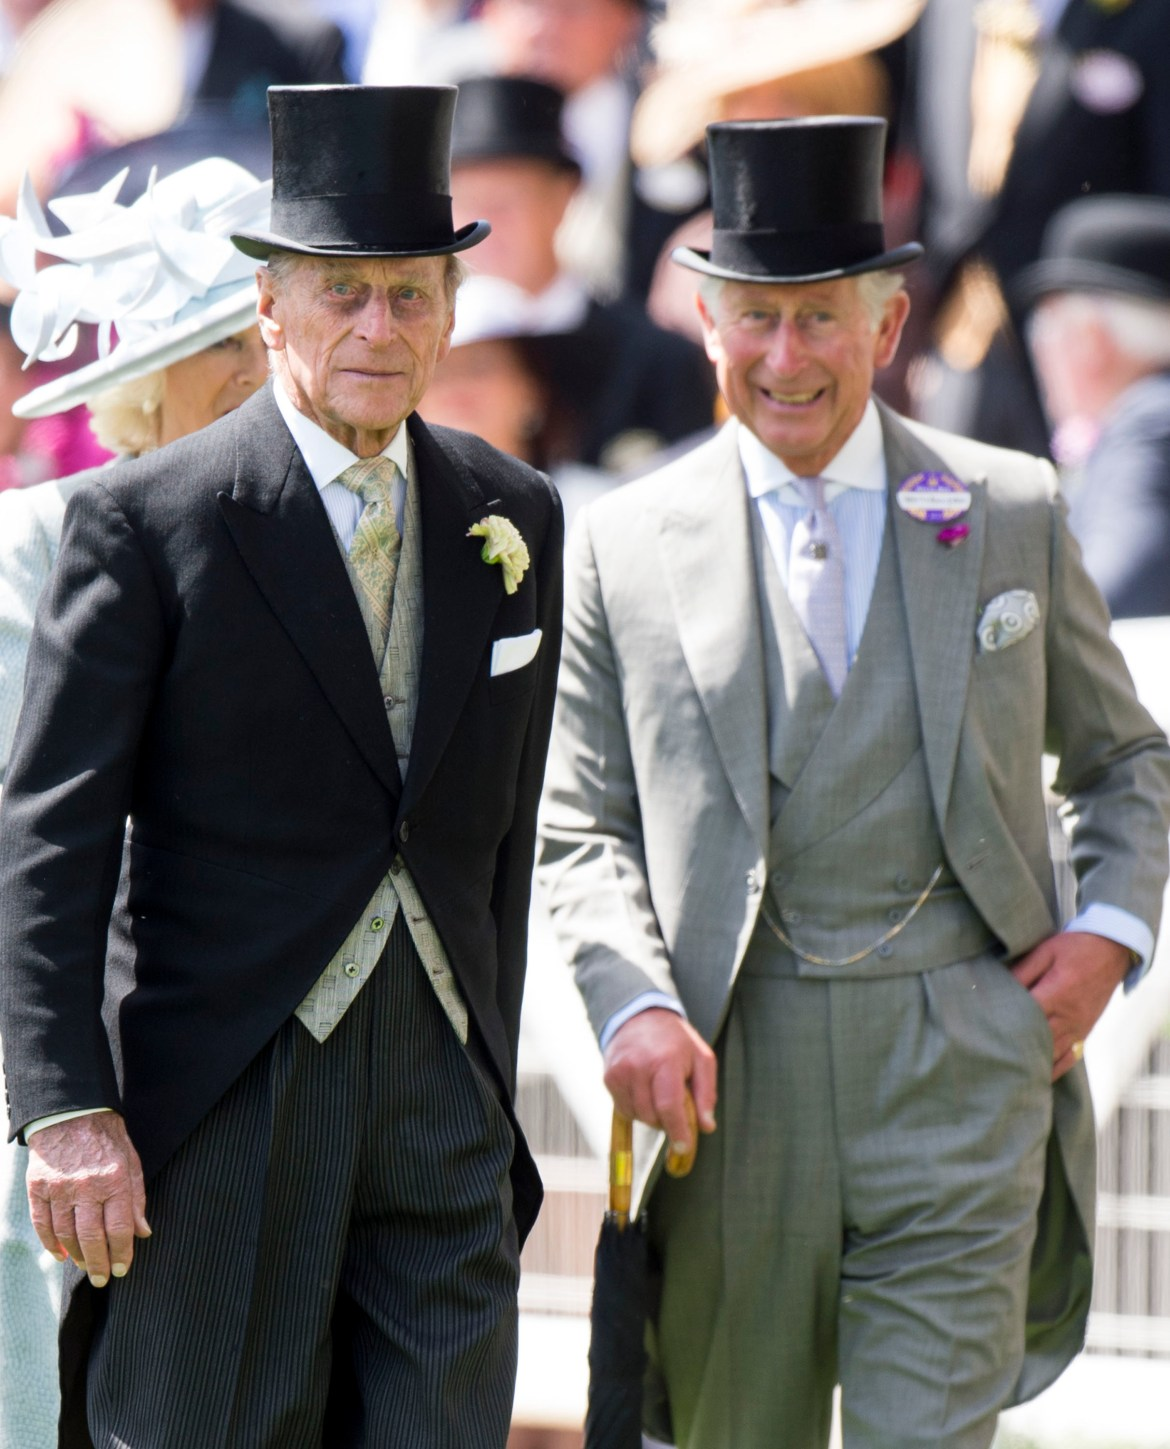 Charles has become the Duke of Edinburgh following Prince Philip's death aged 99